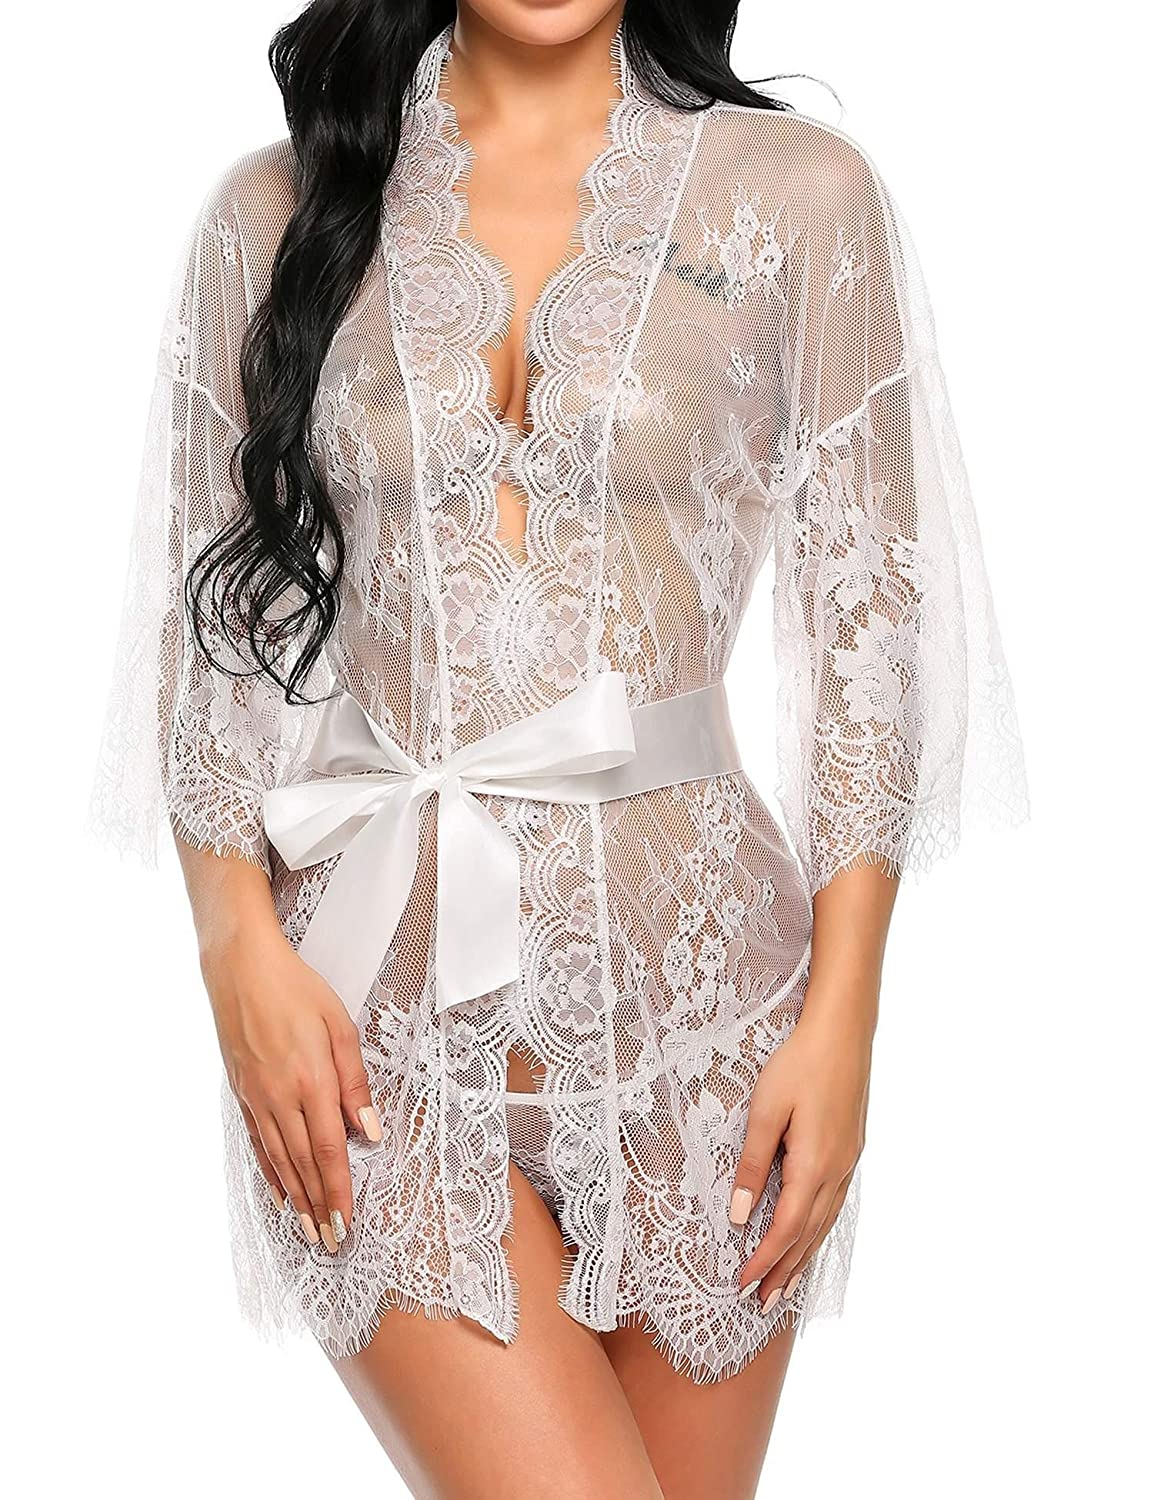 Asatr Womens Lace Kimono Sexy Nightgown Transparent Mesh Lingerie at Amazon Womens Clothing store: